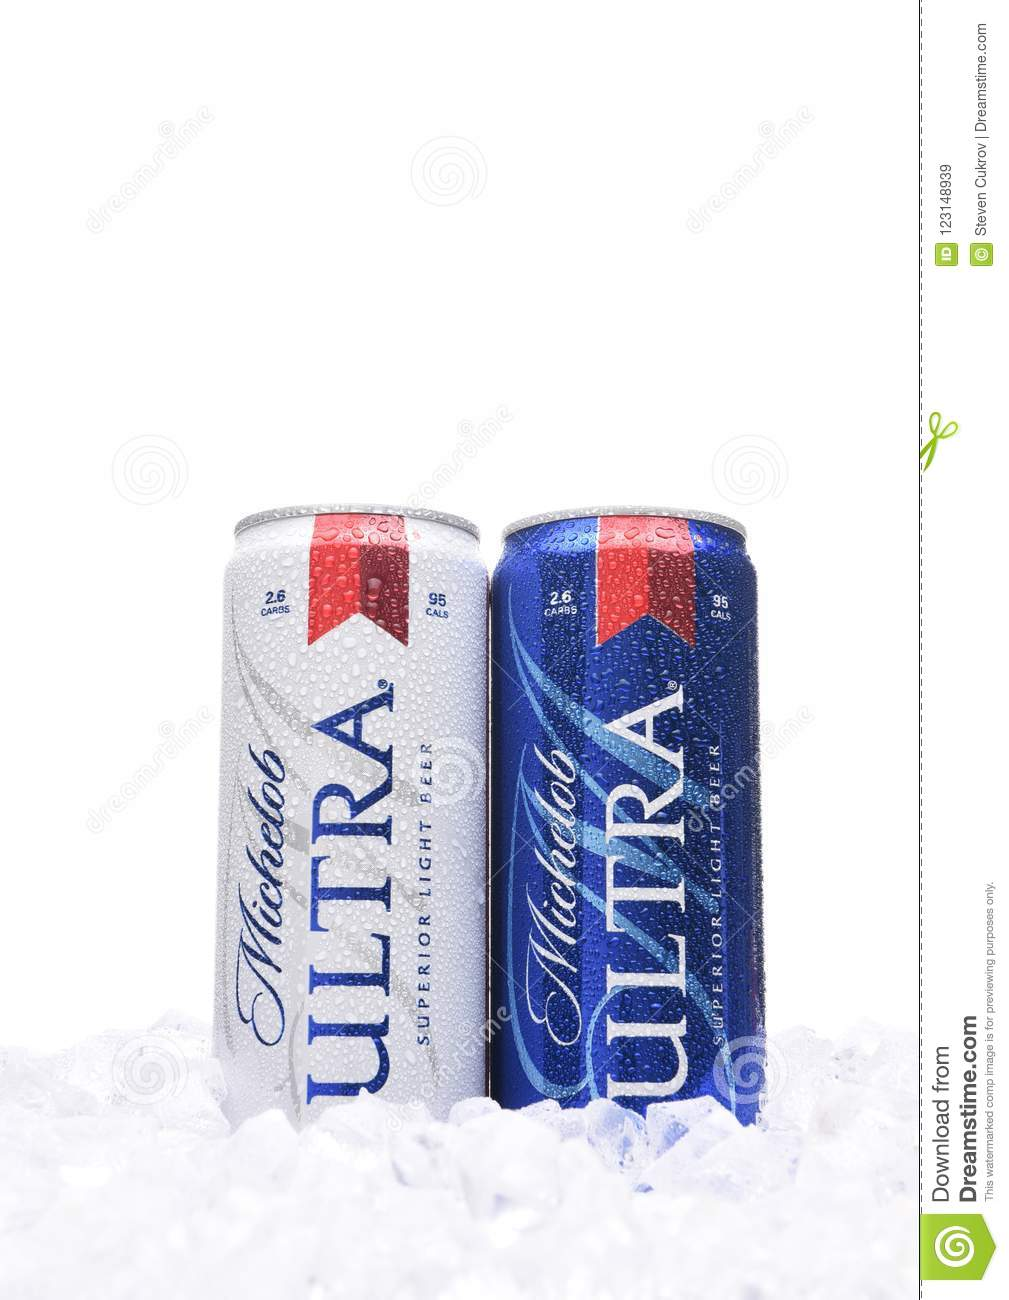 Download Two Michelob Ultra Beer 12 Ounce Cans In Ice. A A Low Carb And Low